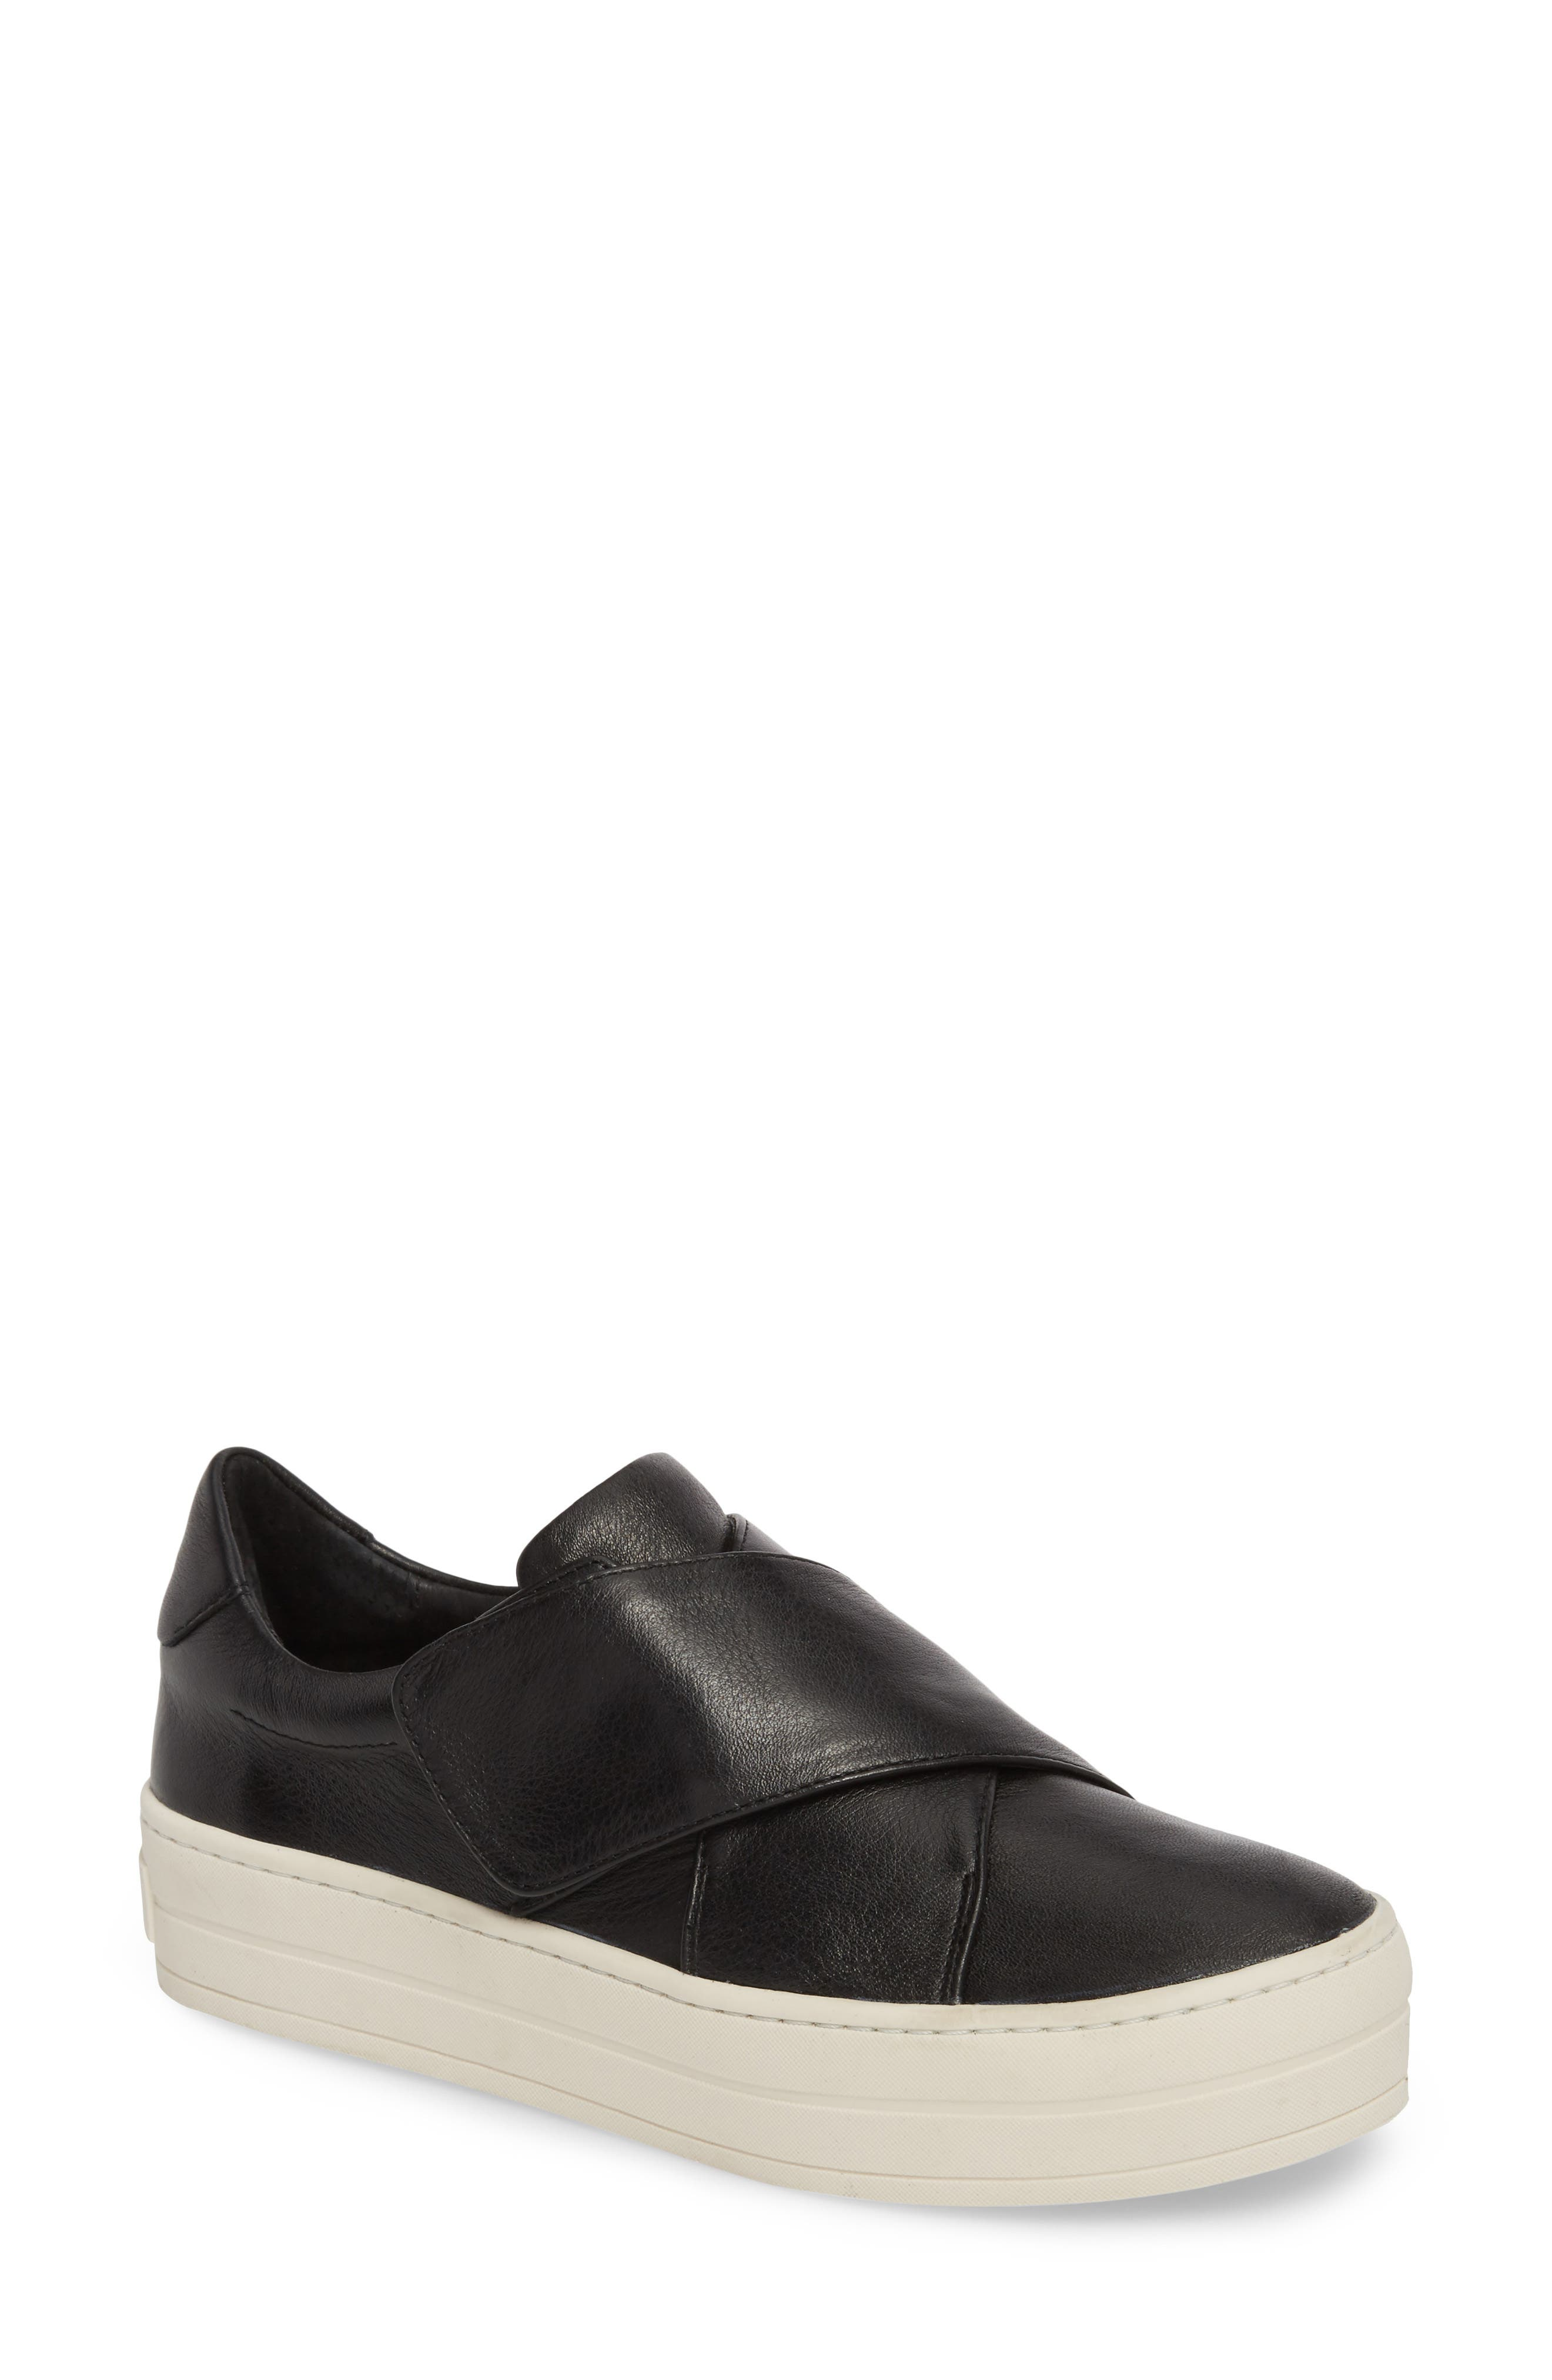 Harper Sneaker,                             Main thumbnail 1, color,                             BLACK LEATHER